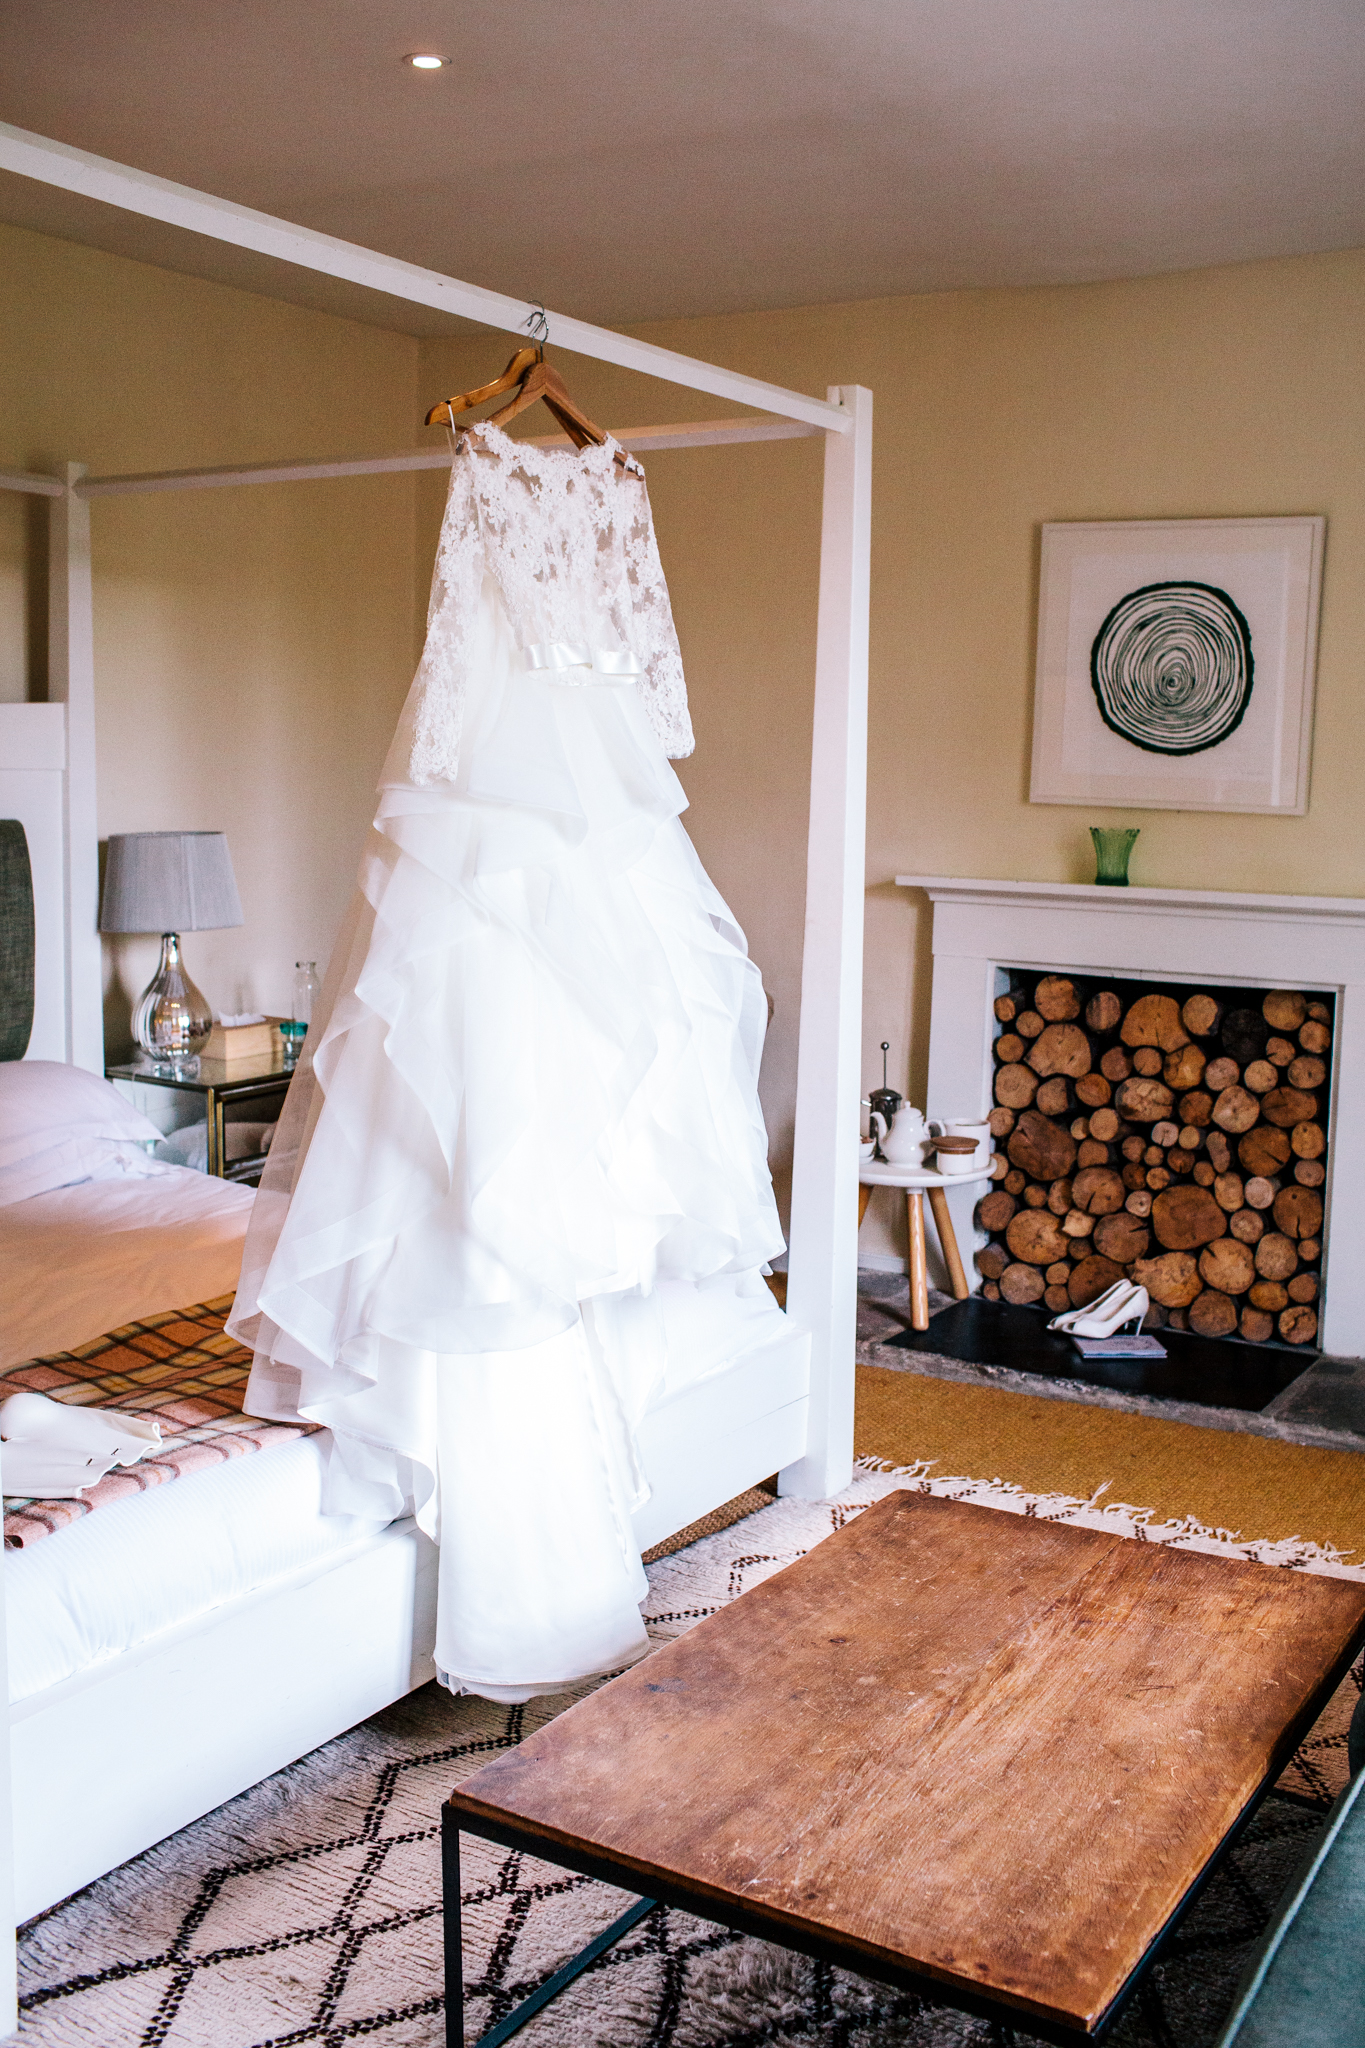 bridal separates hung on wall for photograph at the Talbot Inn in Mells